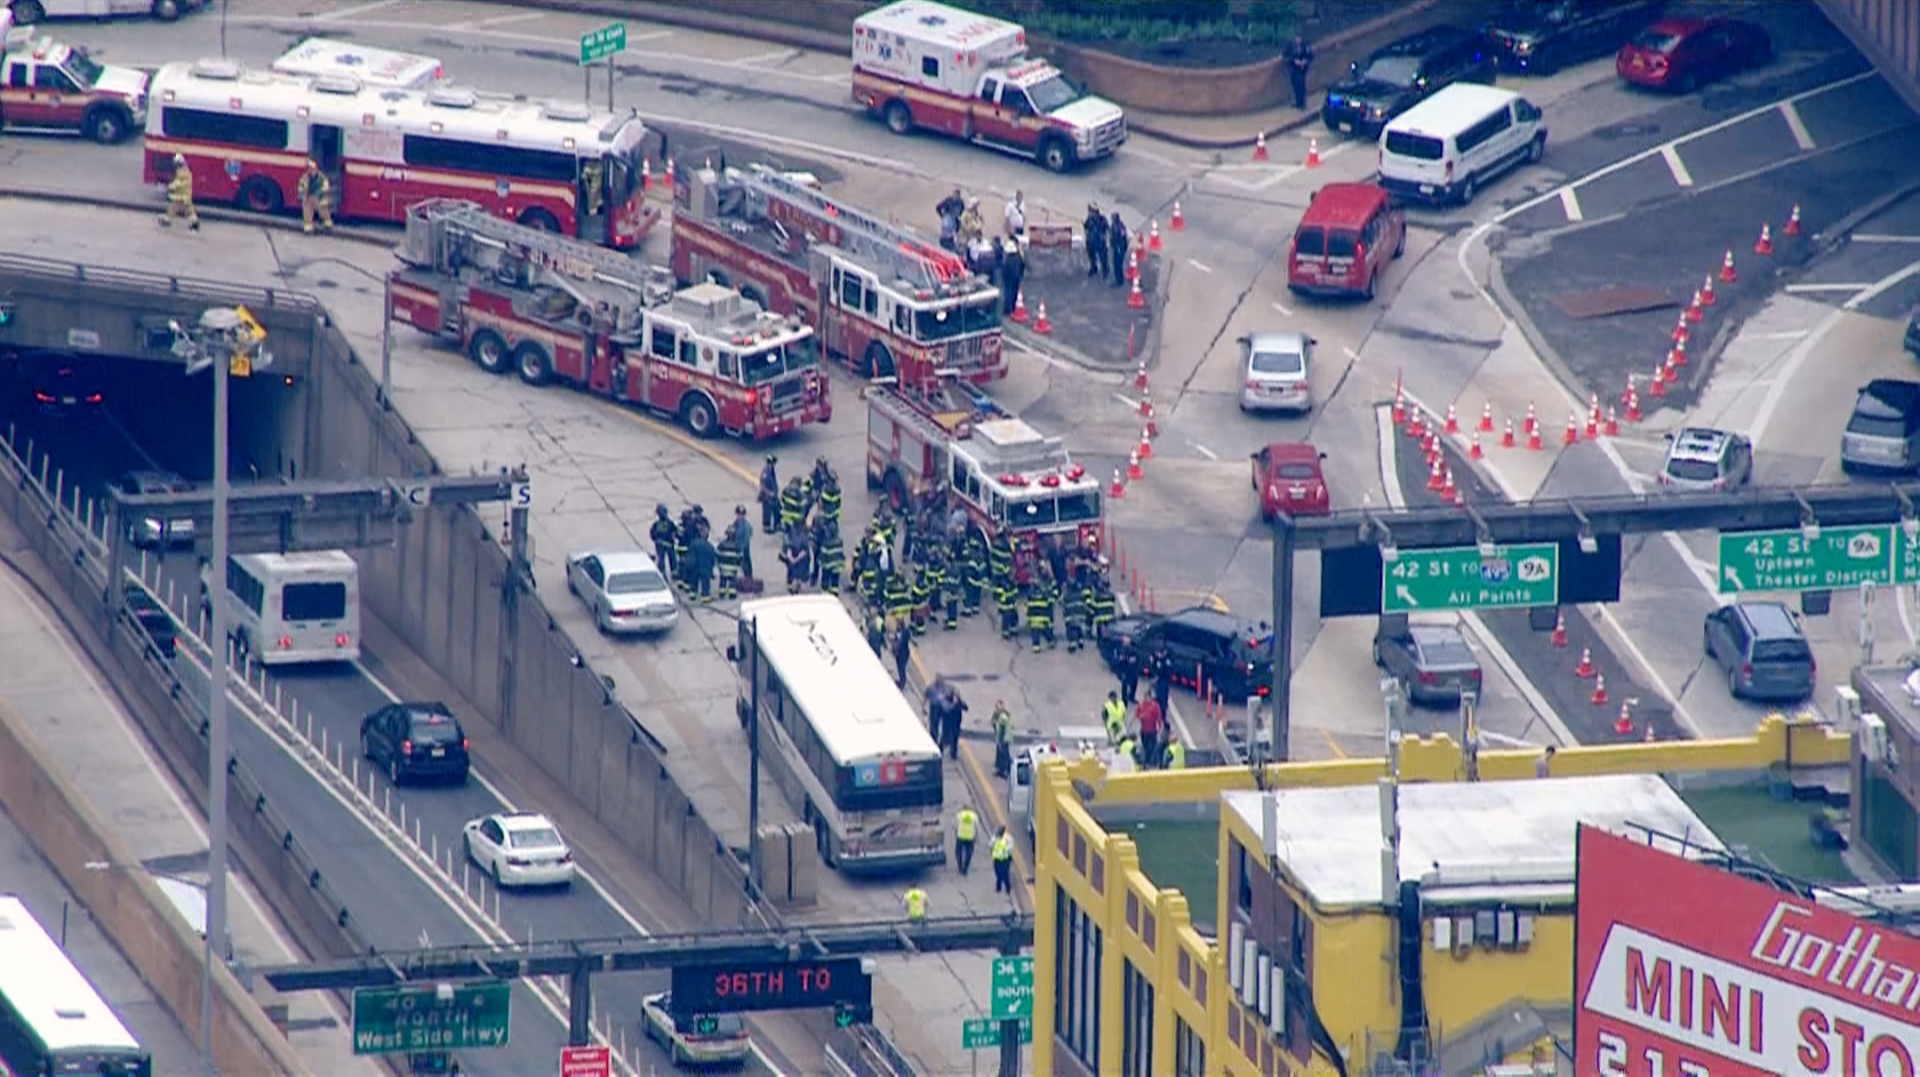 Dozens injured when two buses crash at NYC tunnel